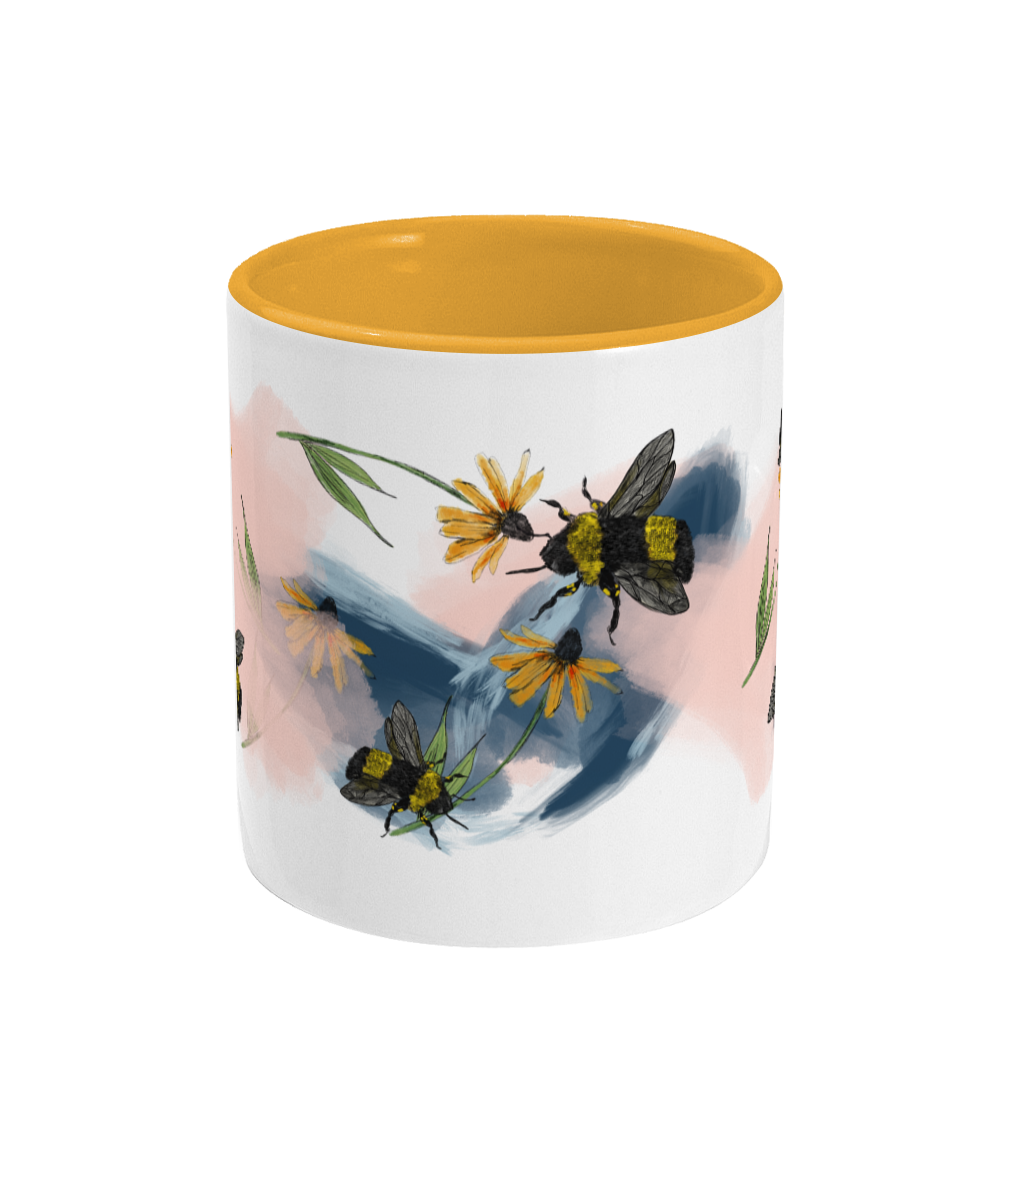 Bee my daisy ceramic